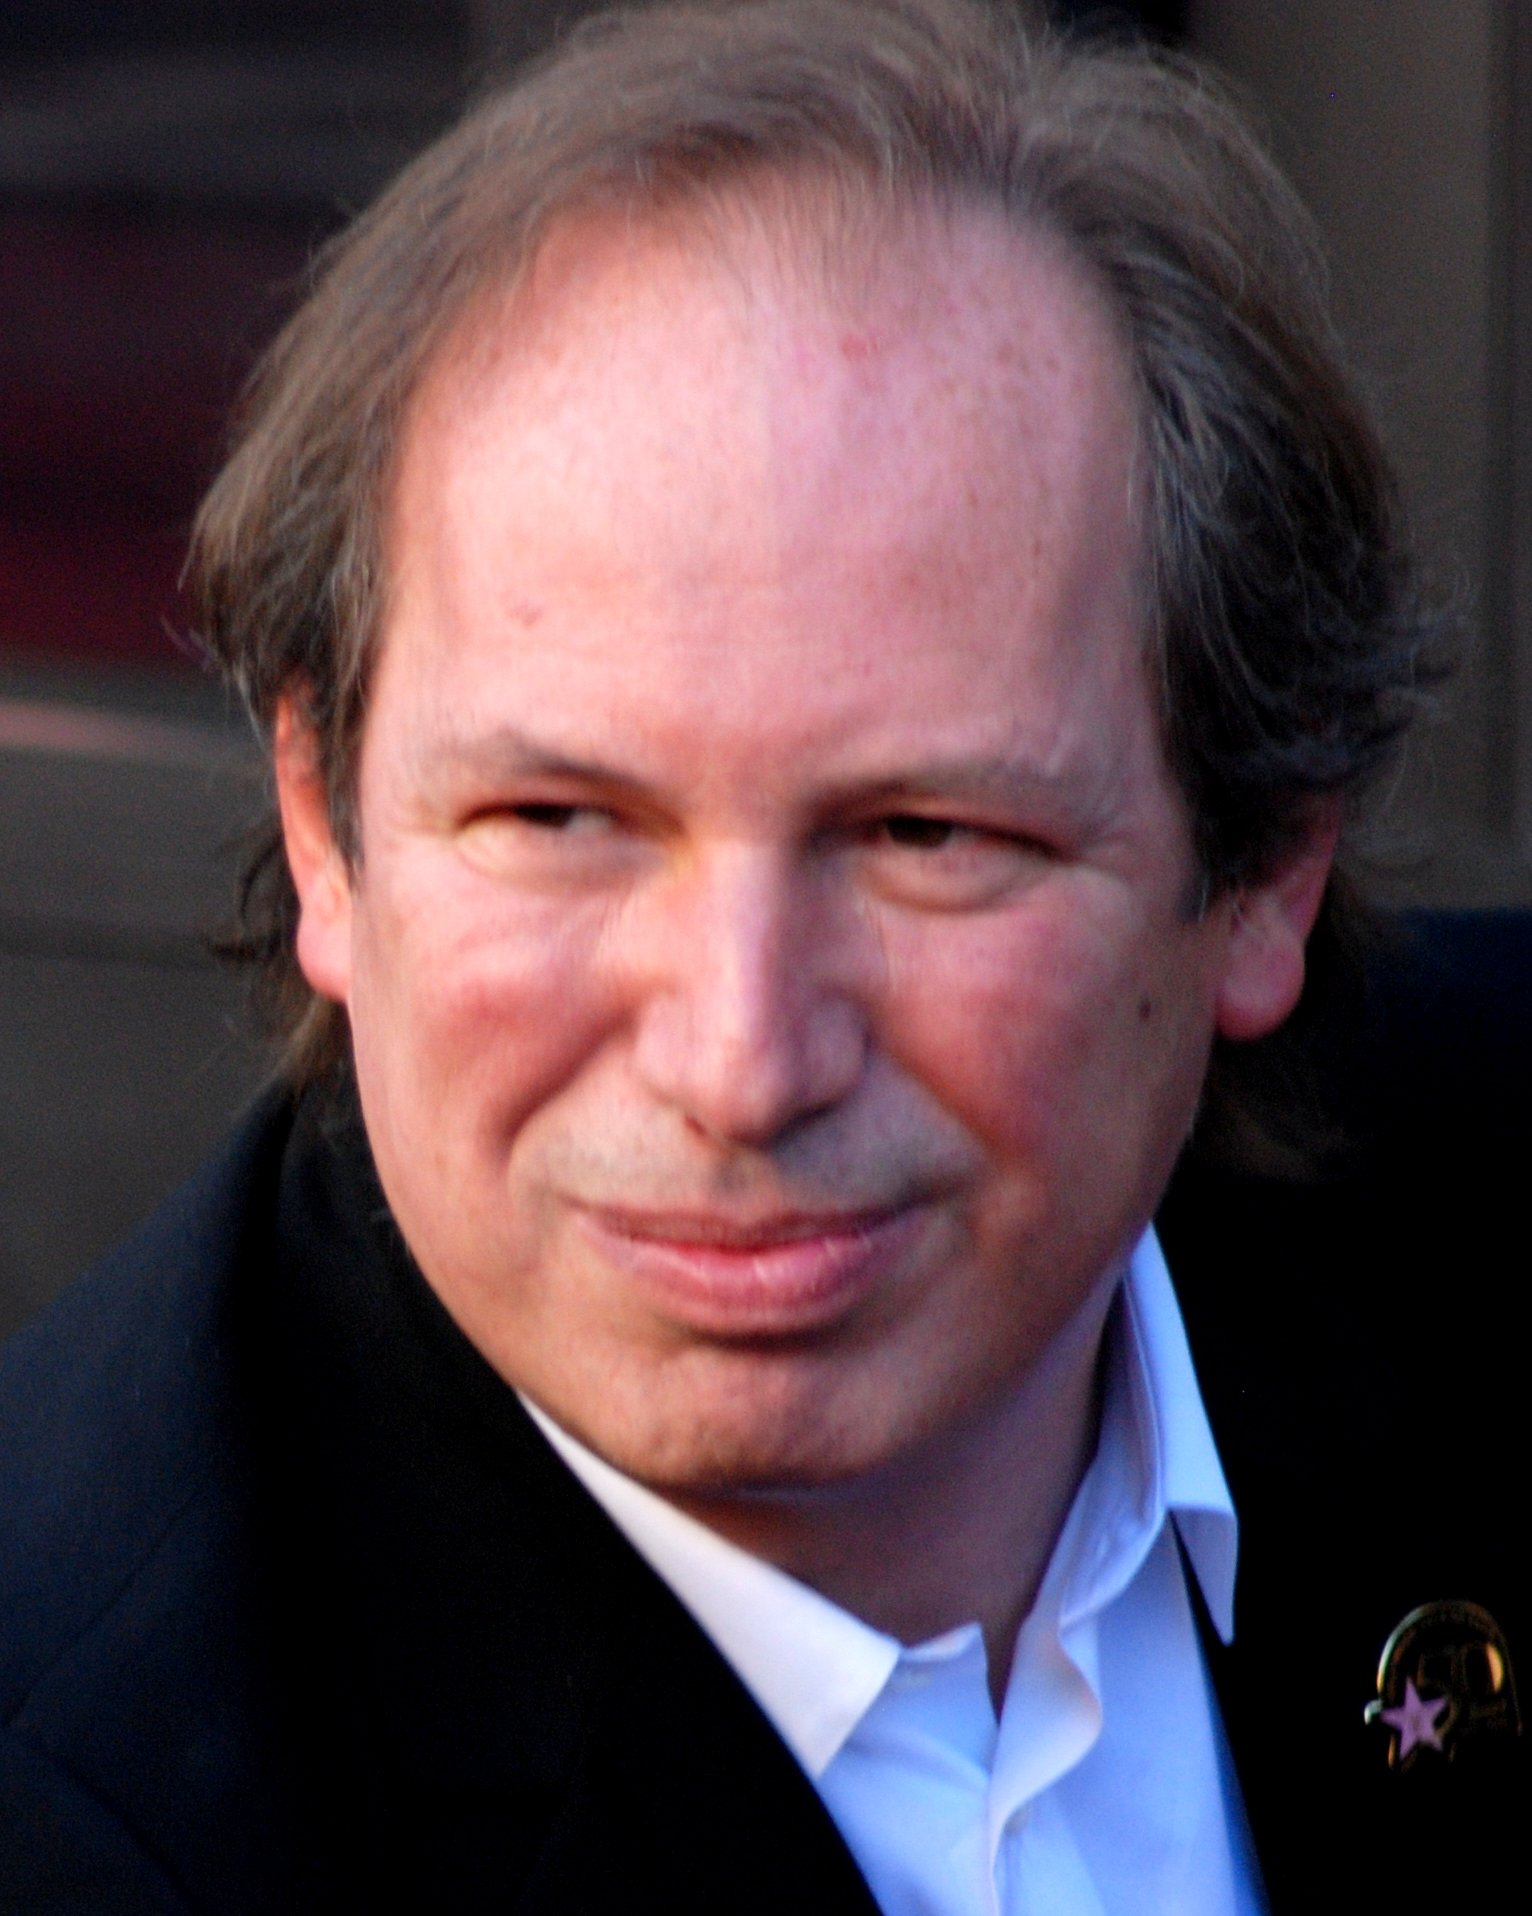 Hans Zimmer earned a  million dollar salary, leaving the net worth at 90 million in 2017